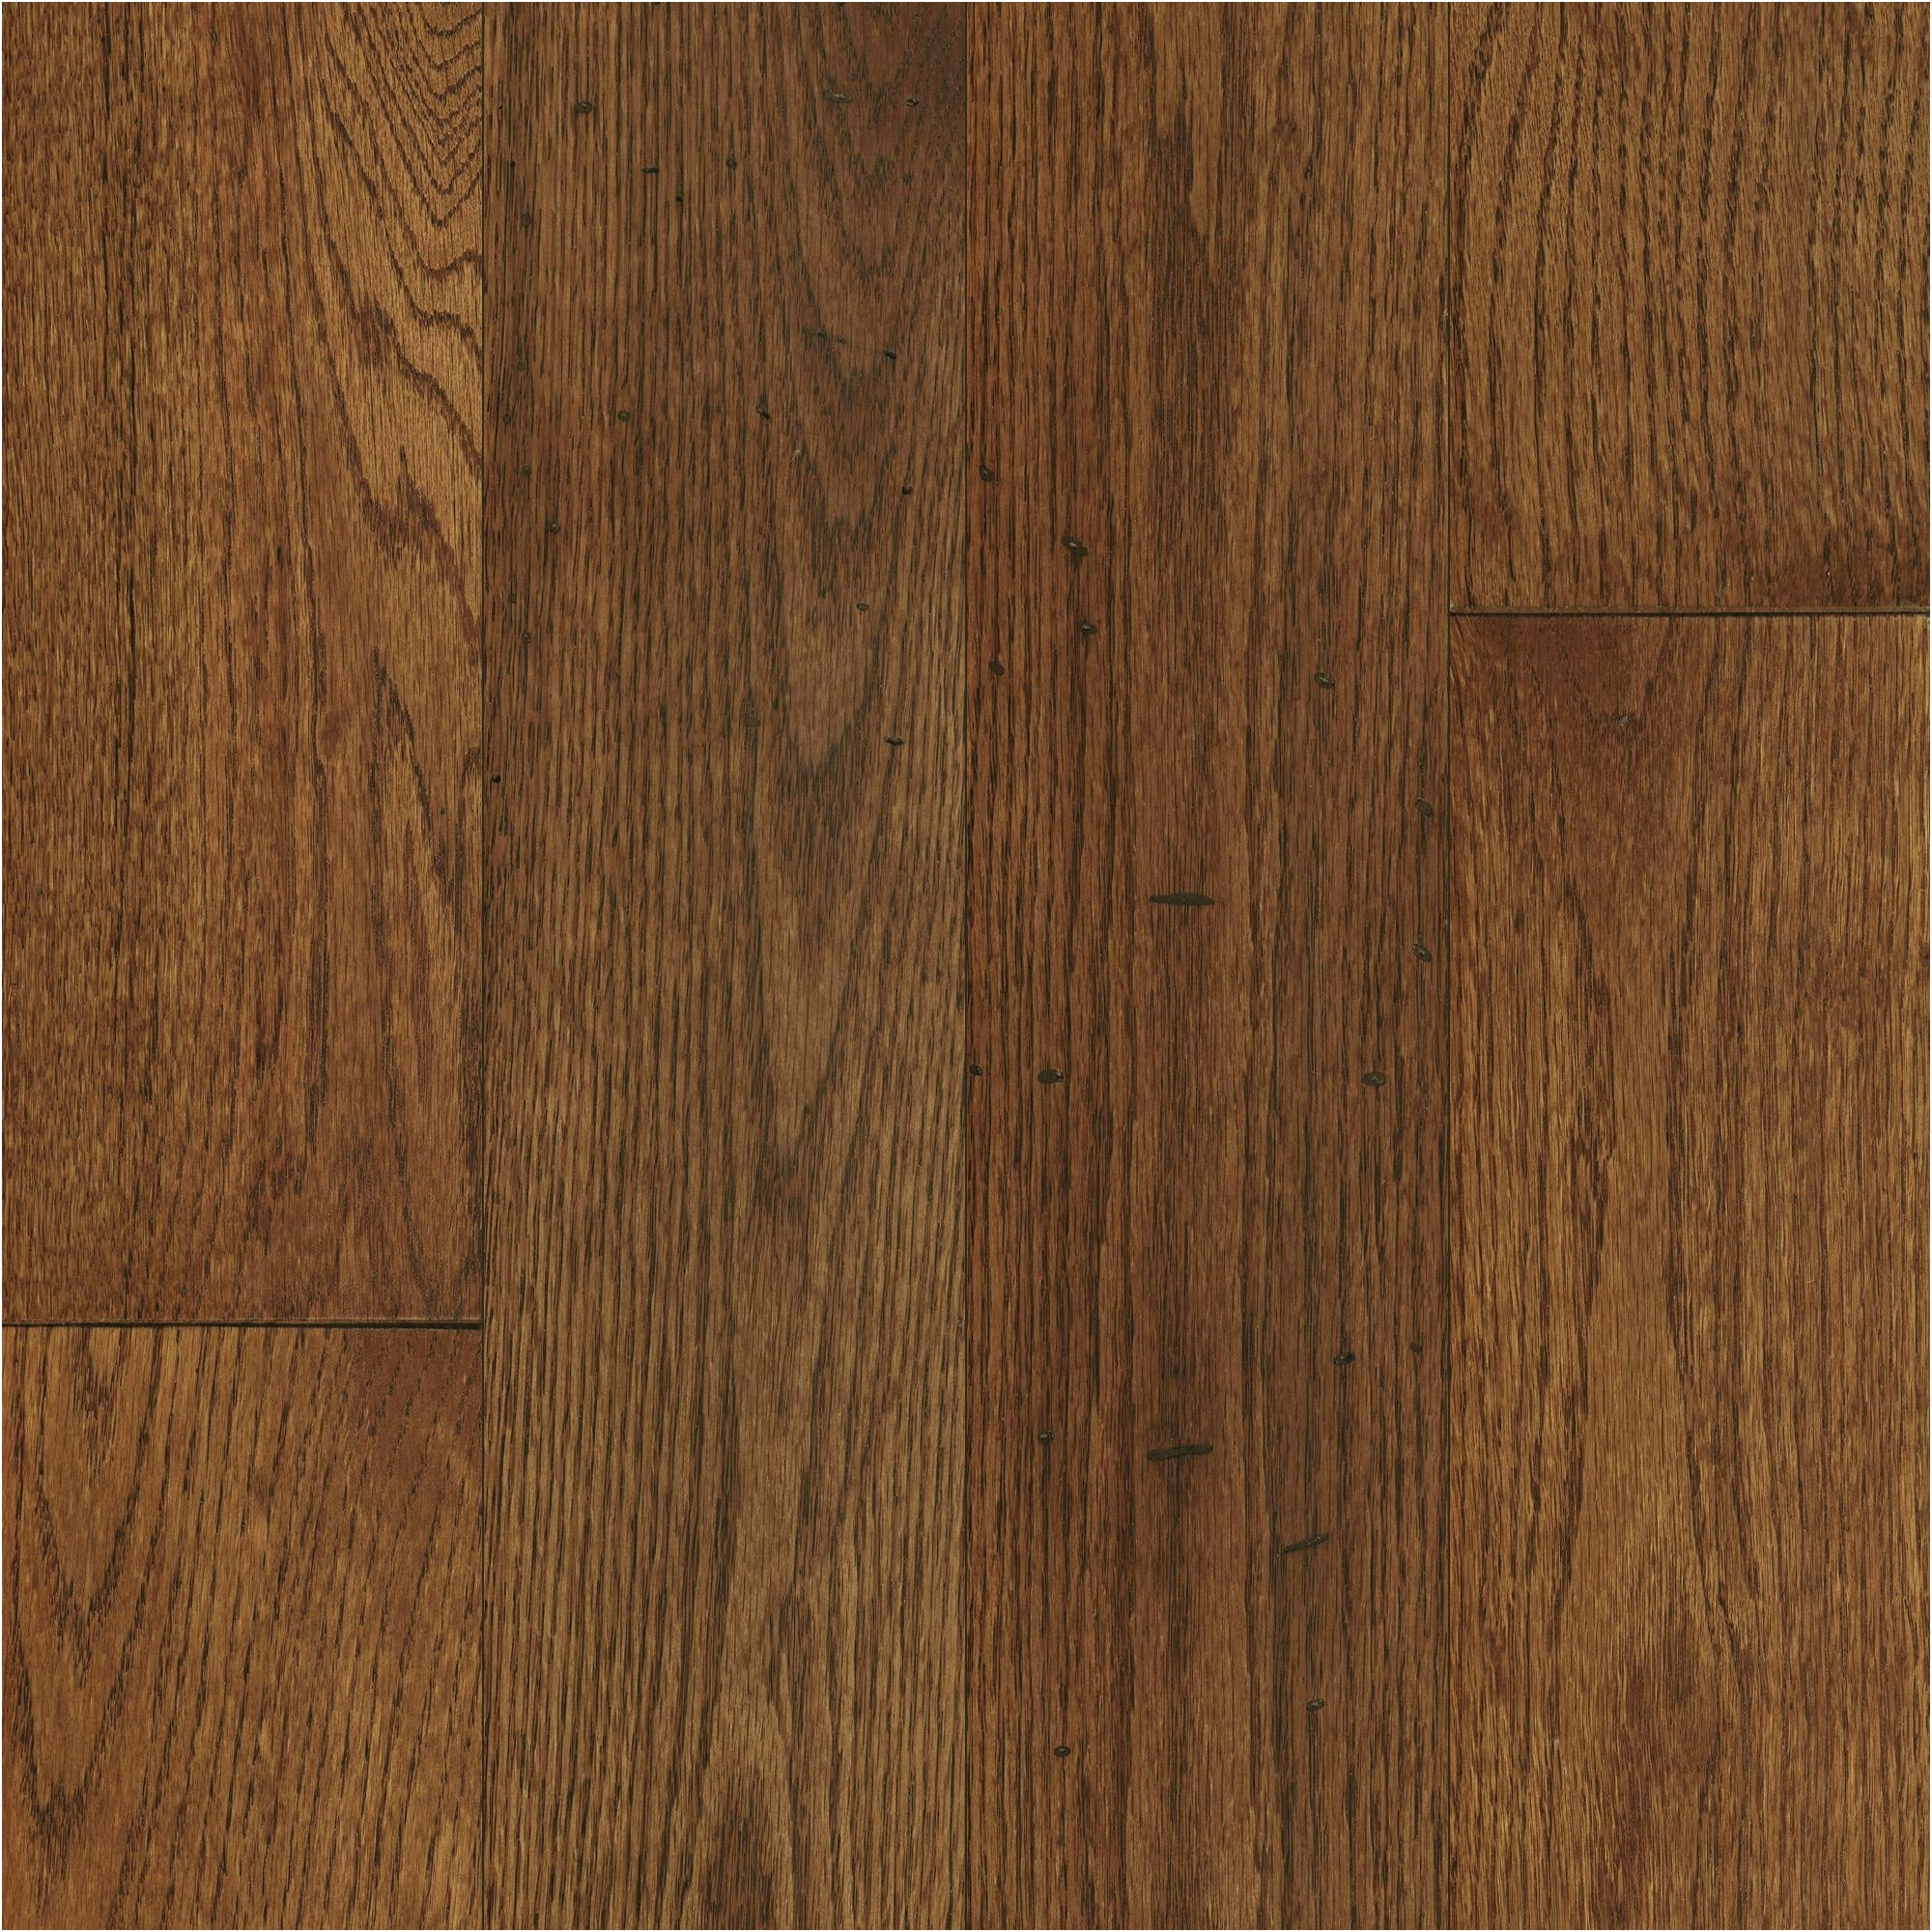 Bruce Hardwood Flooring Canada Of Unfinished Hardwood Flooring for Sale Flooring Design Regarding Hardwood Floor Design Wood Floor Installation Cost Hardwood